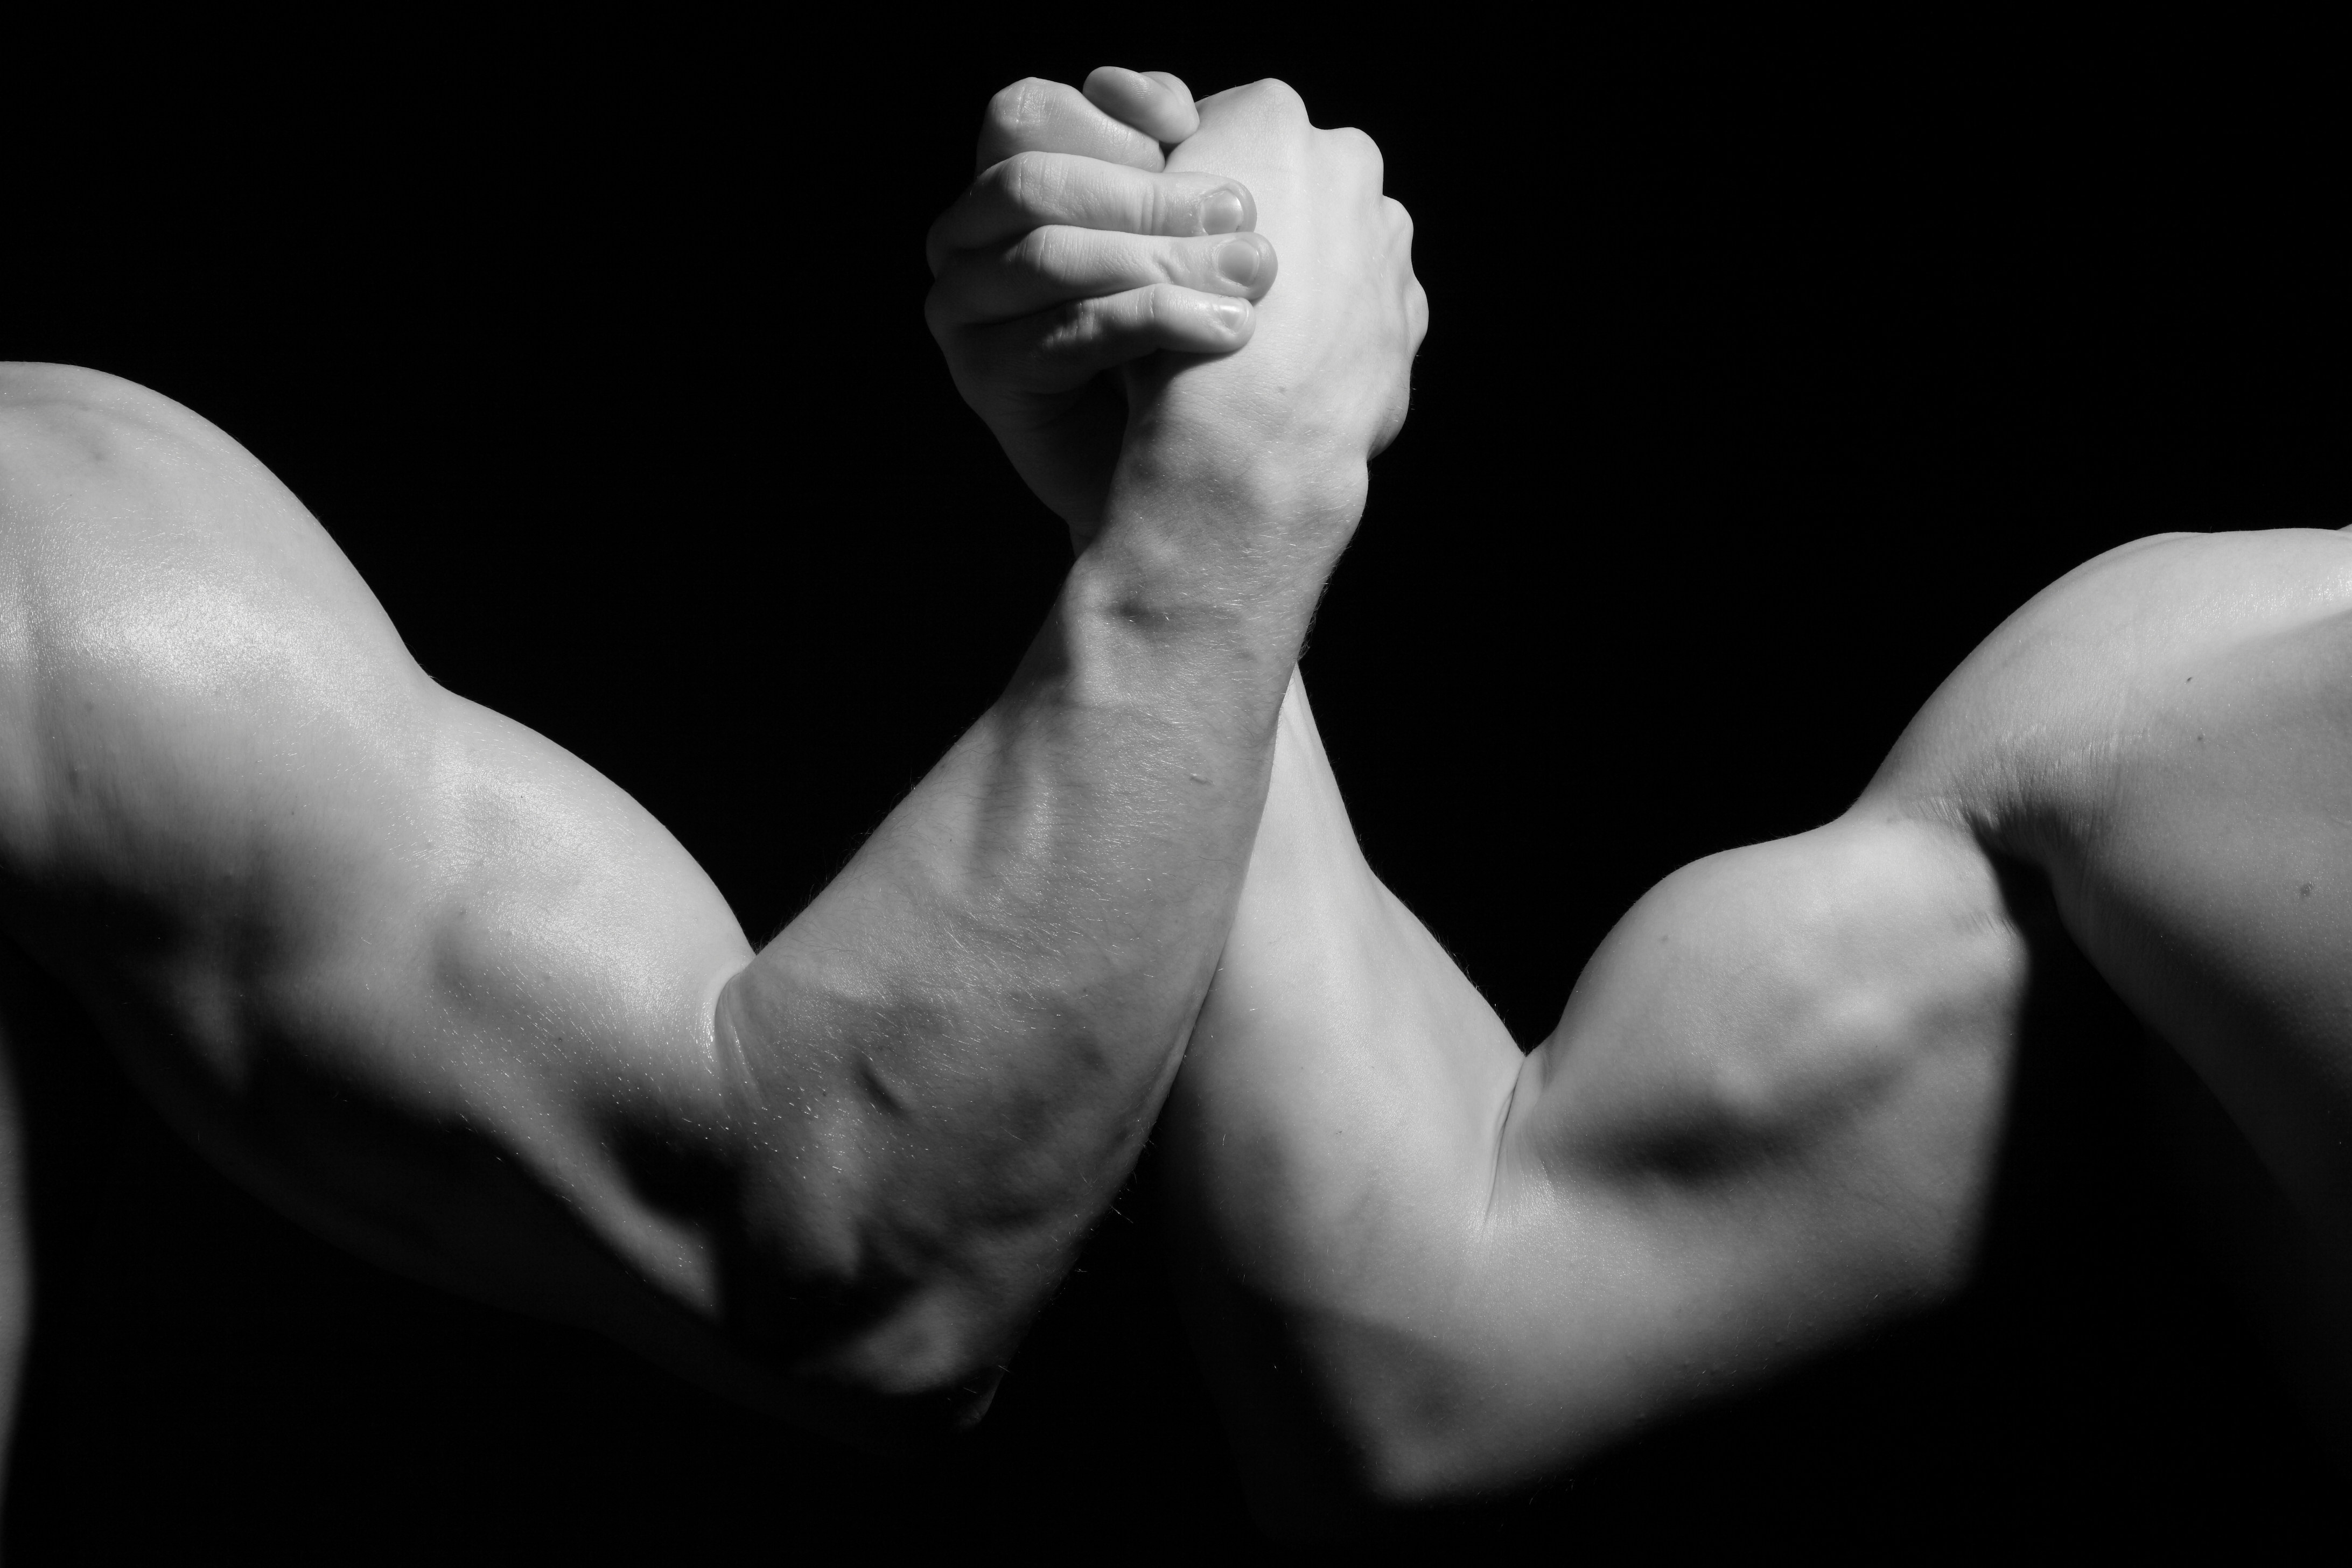 154044 download wallpaper Men, Sports, Hands, Fight, Black And White, Struggle, Biceps, Arm Wrestling screensavers and pictures for free